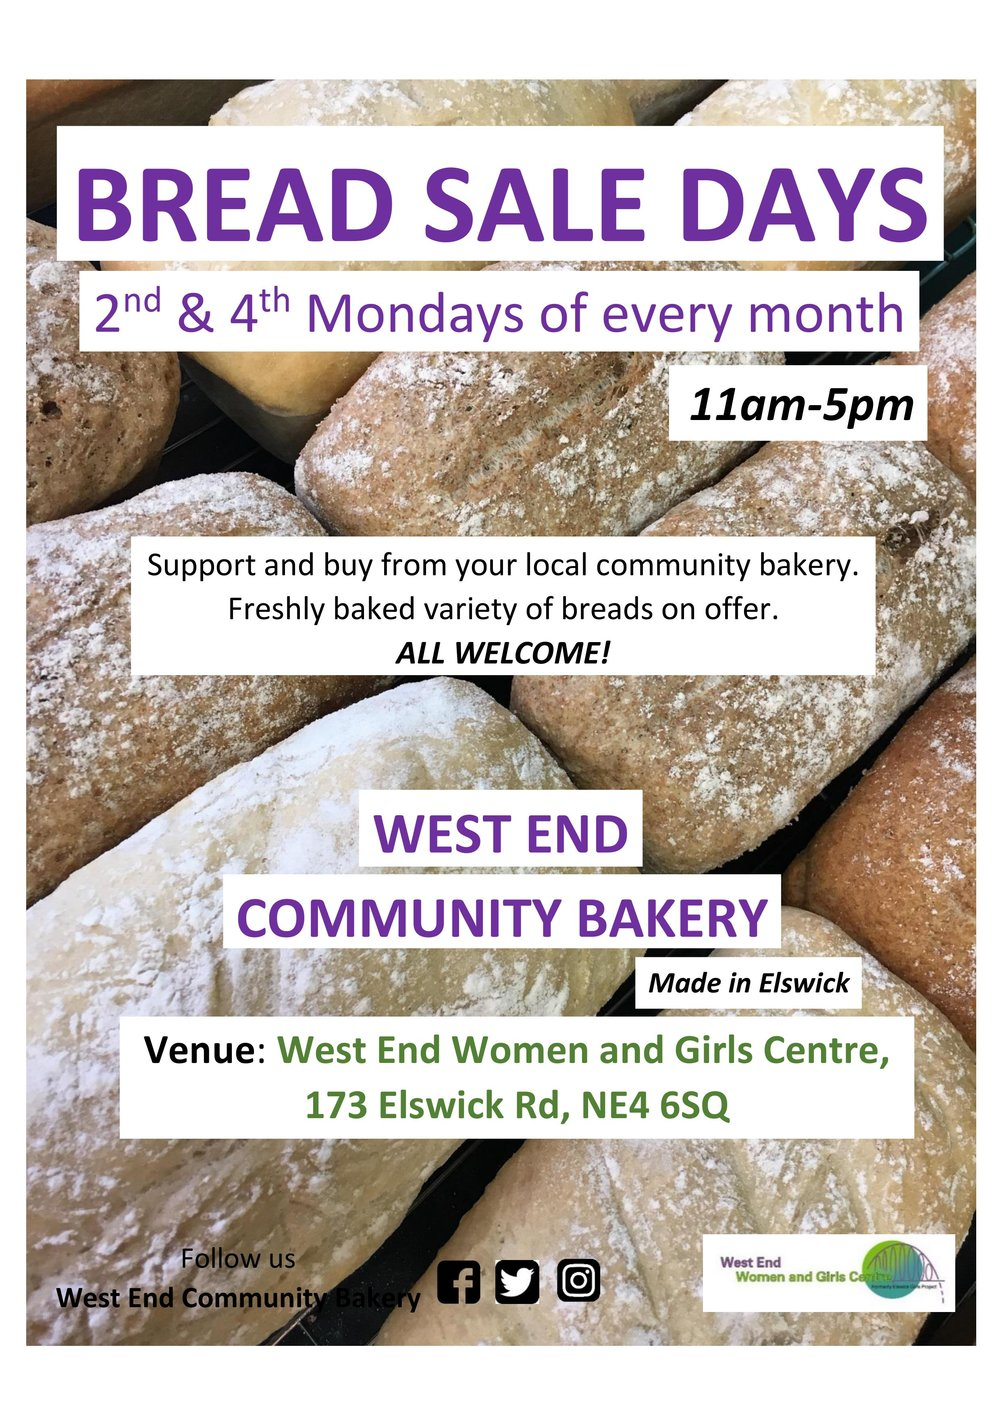 Come and get your fresh bread! - West End Community Bakery is excited to establish a monthly bread sale day, on the 2nd & 4th Mondays of every month, 11am-5pm!A variety of freshly baked breads will be available on the day, including white, brown, mozzarella and tomato, large and mini loaves. Have a request to make? Don't be shy! Dates:Monday 10th SeptemberMonday 24th SeptemberMonday 8th OctoberMonday 22nd OctoberMonday 12th NovemberMonday 26th NovemberMonday 10th December** only one December date due to Christmas EveBe kind and share this event!